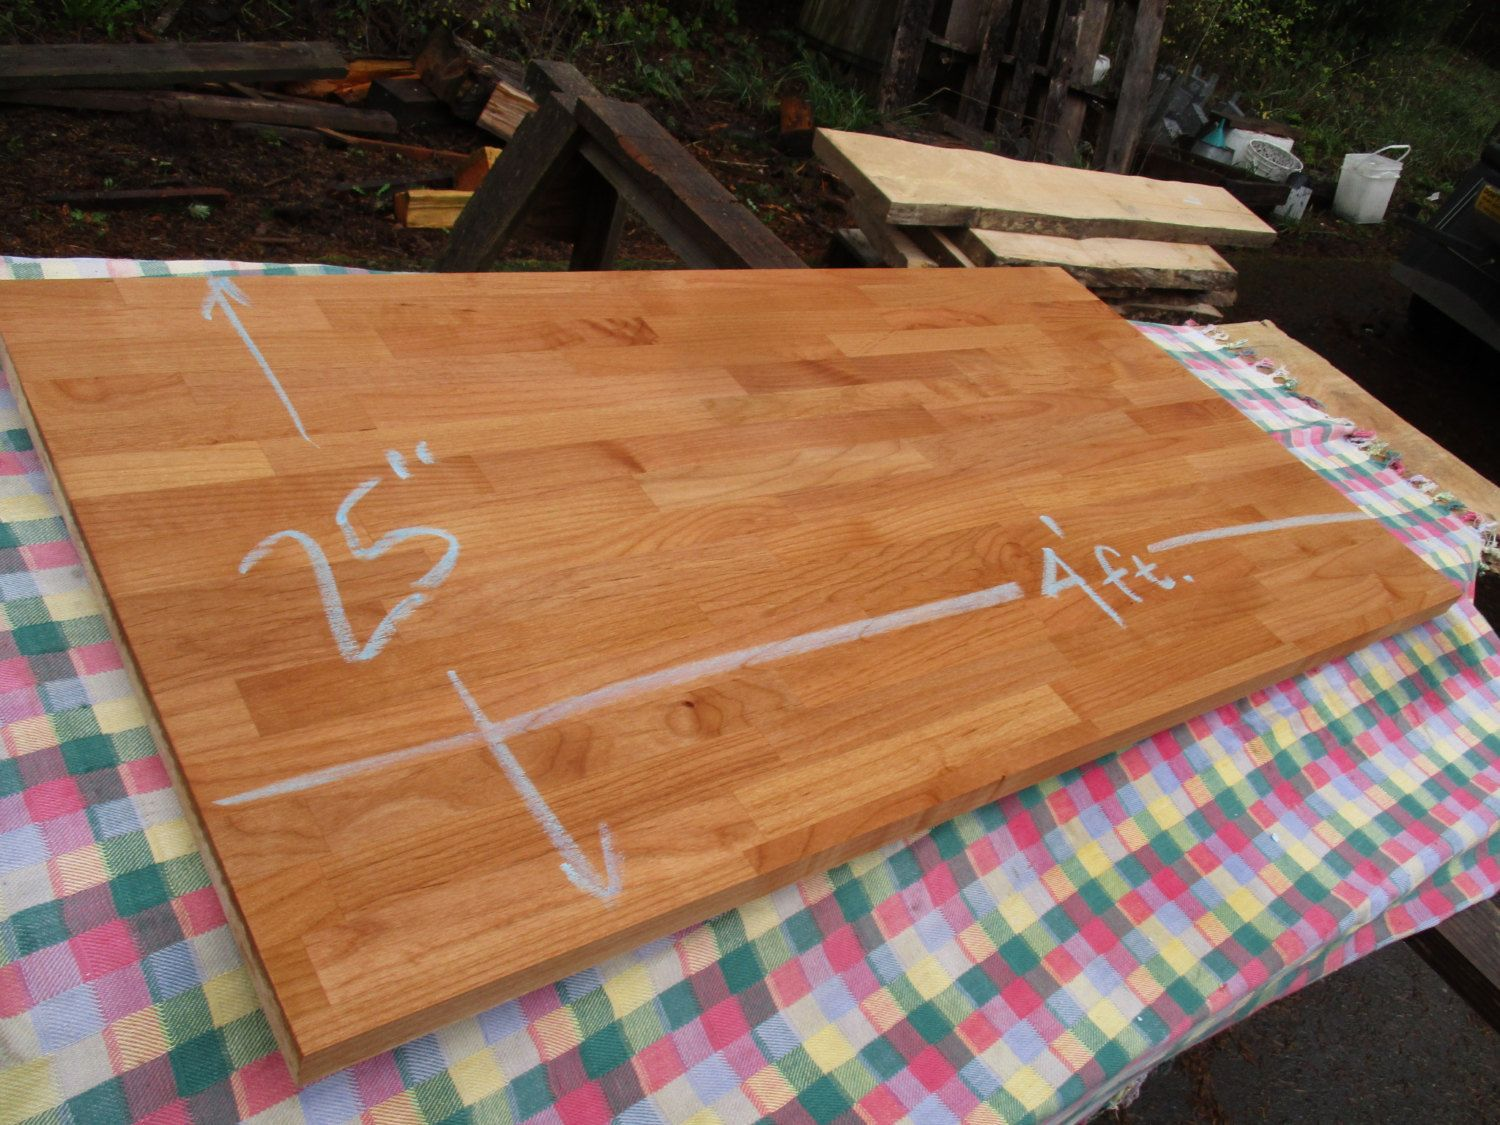 how long will it take for wood stain to dry